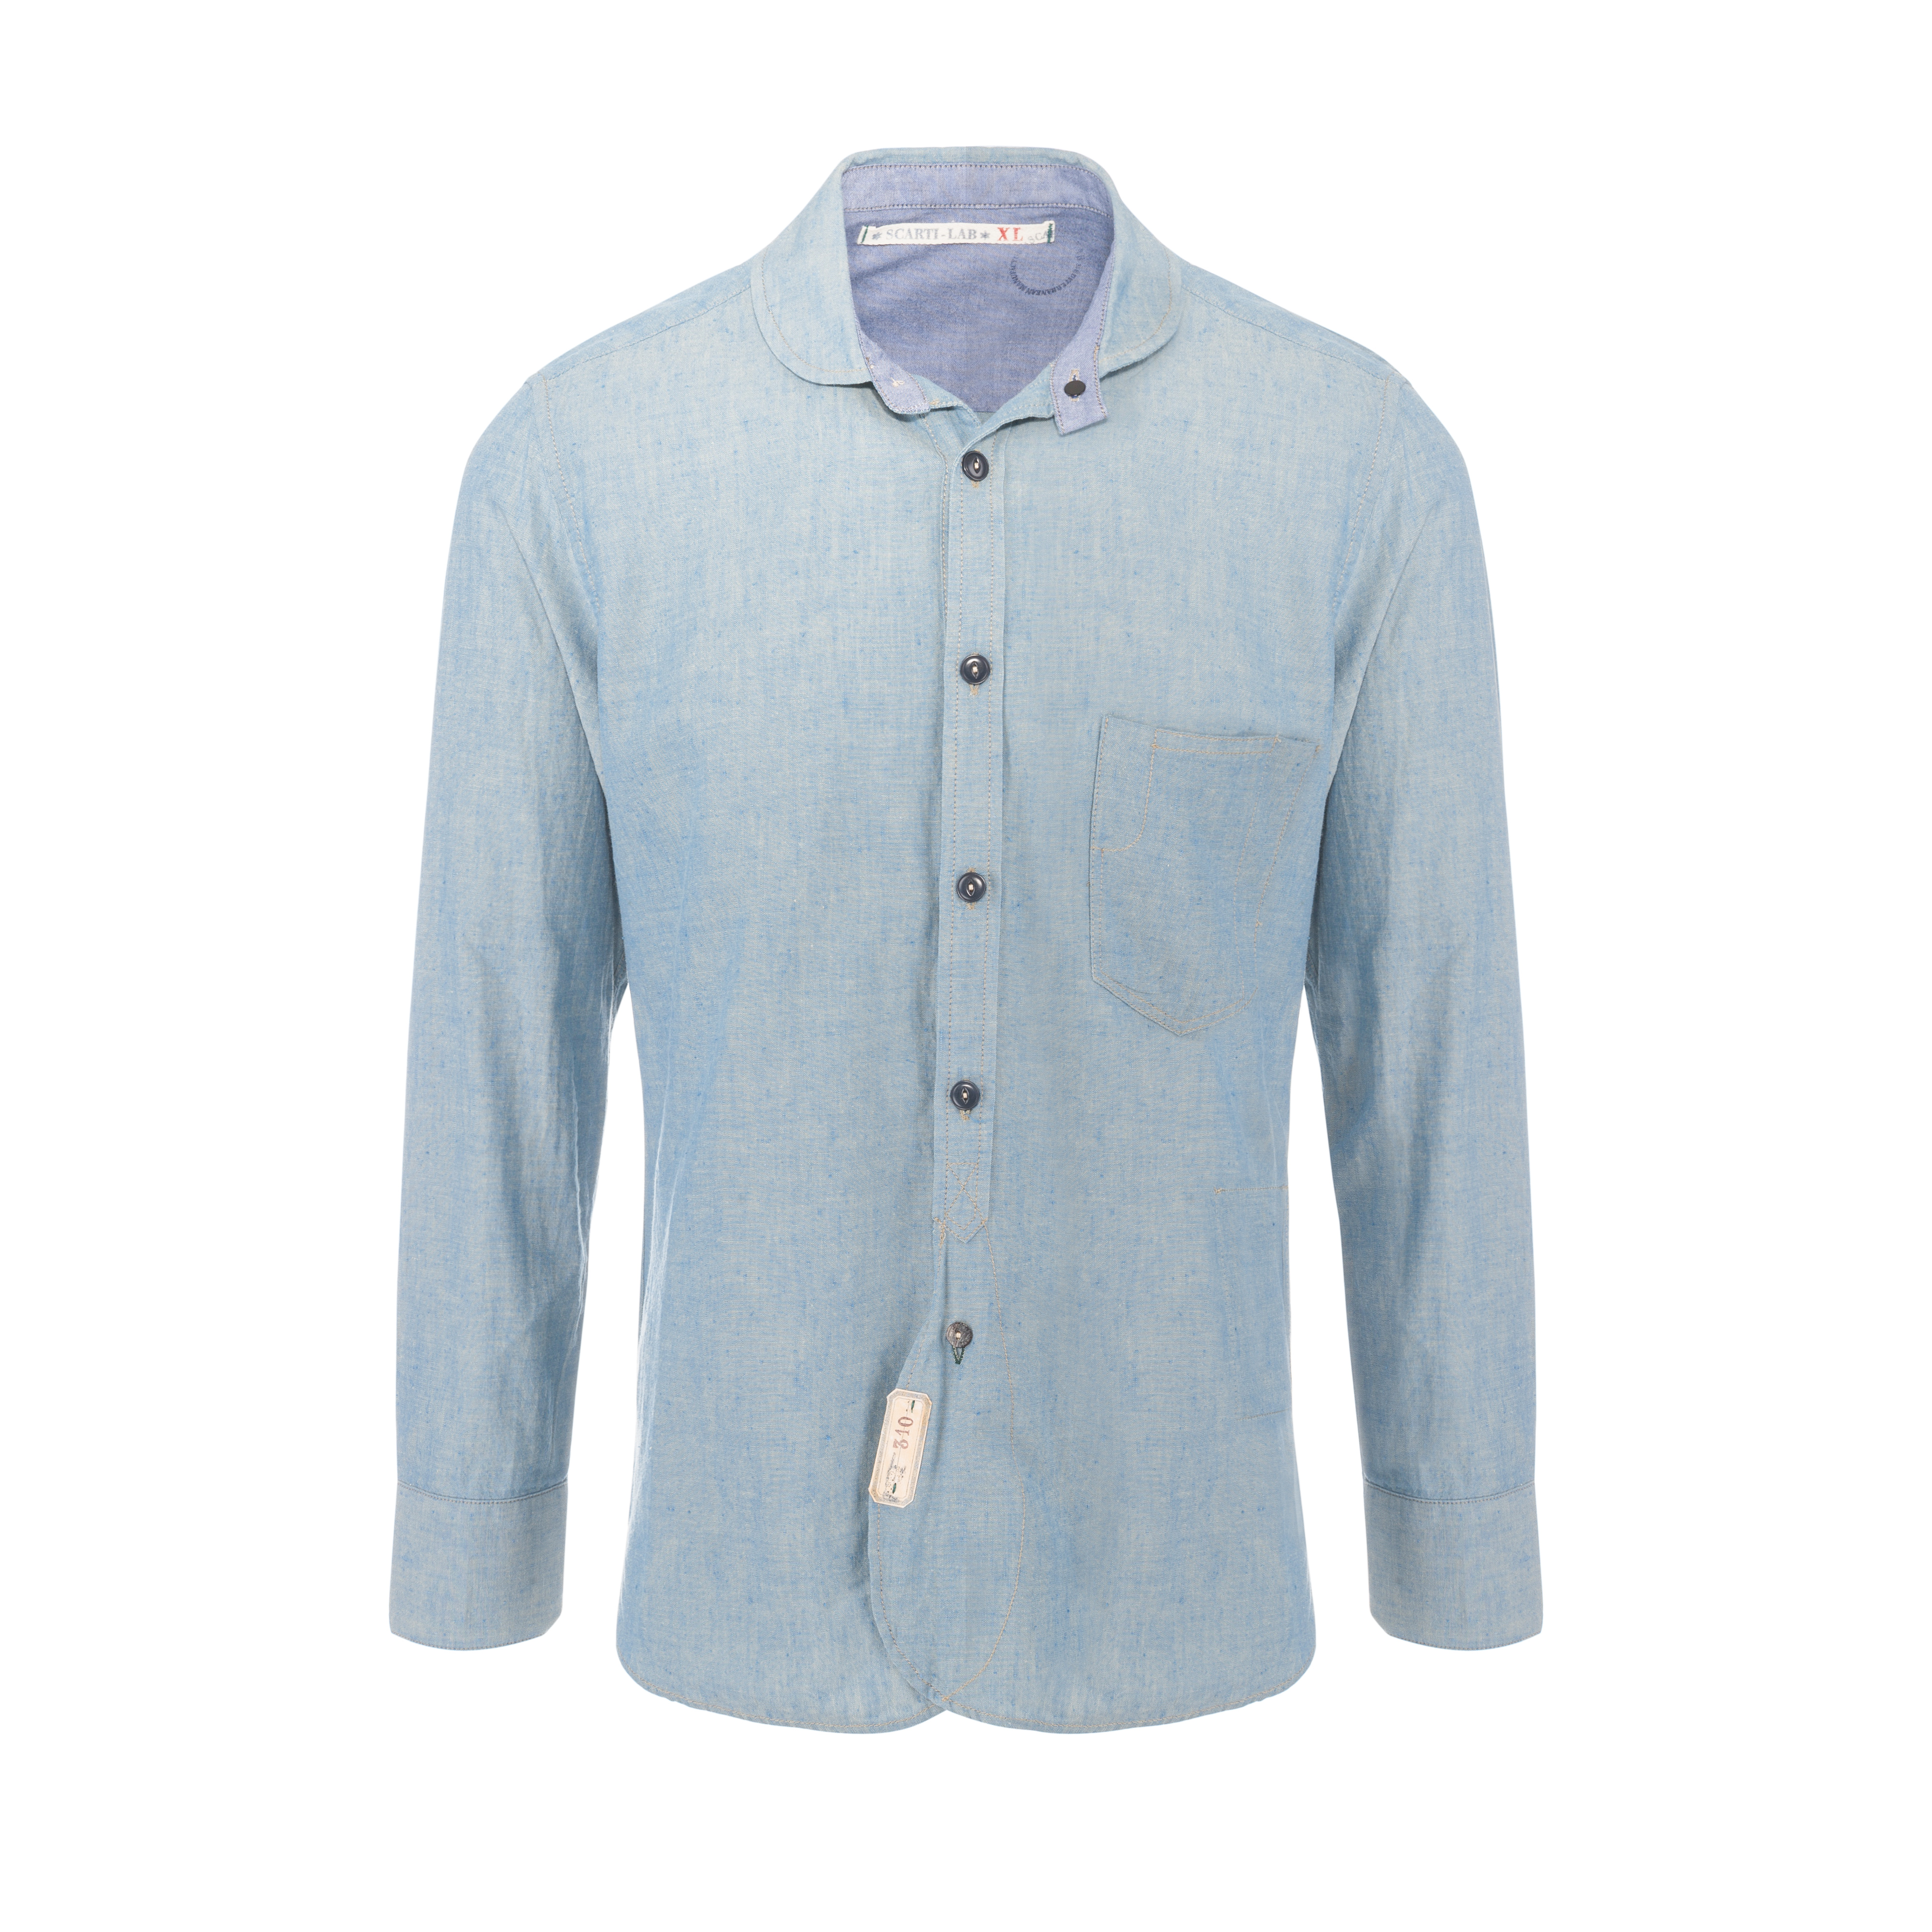 Buy the latest light blue shirt cheap shop fashion style with free shipping, and check out our daily updated new arrival light blue shirt at rabbetedh.ga